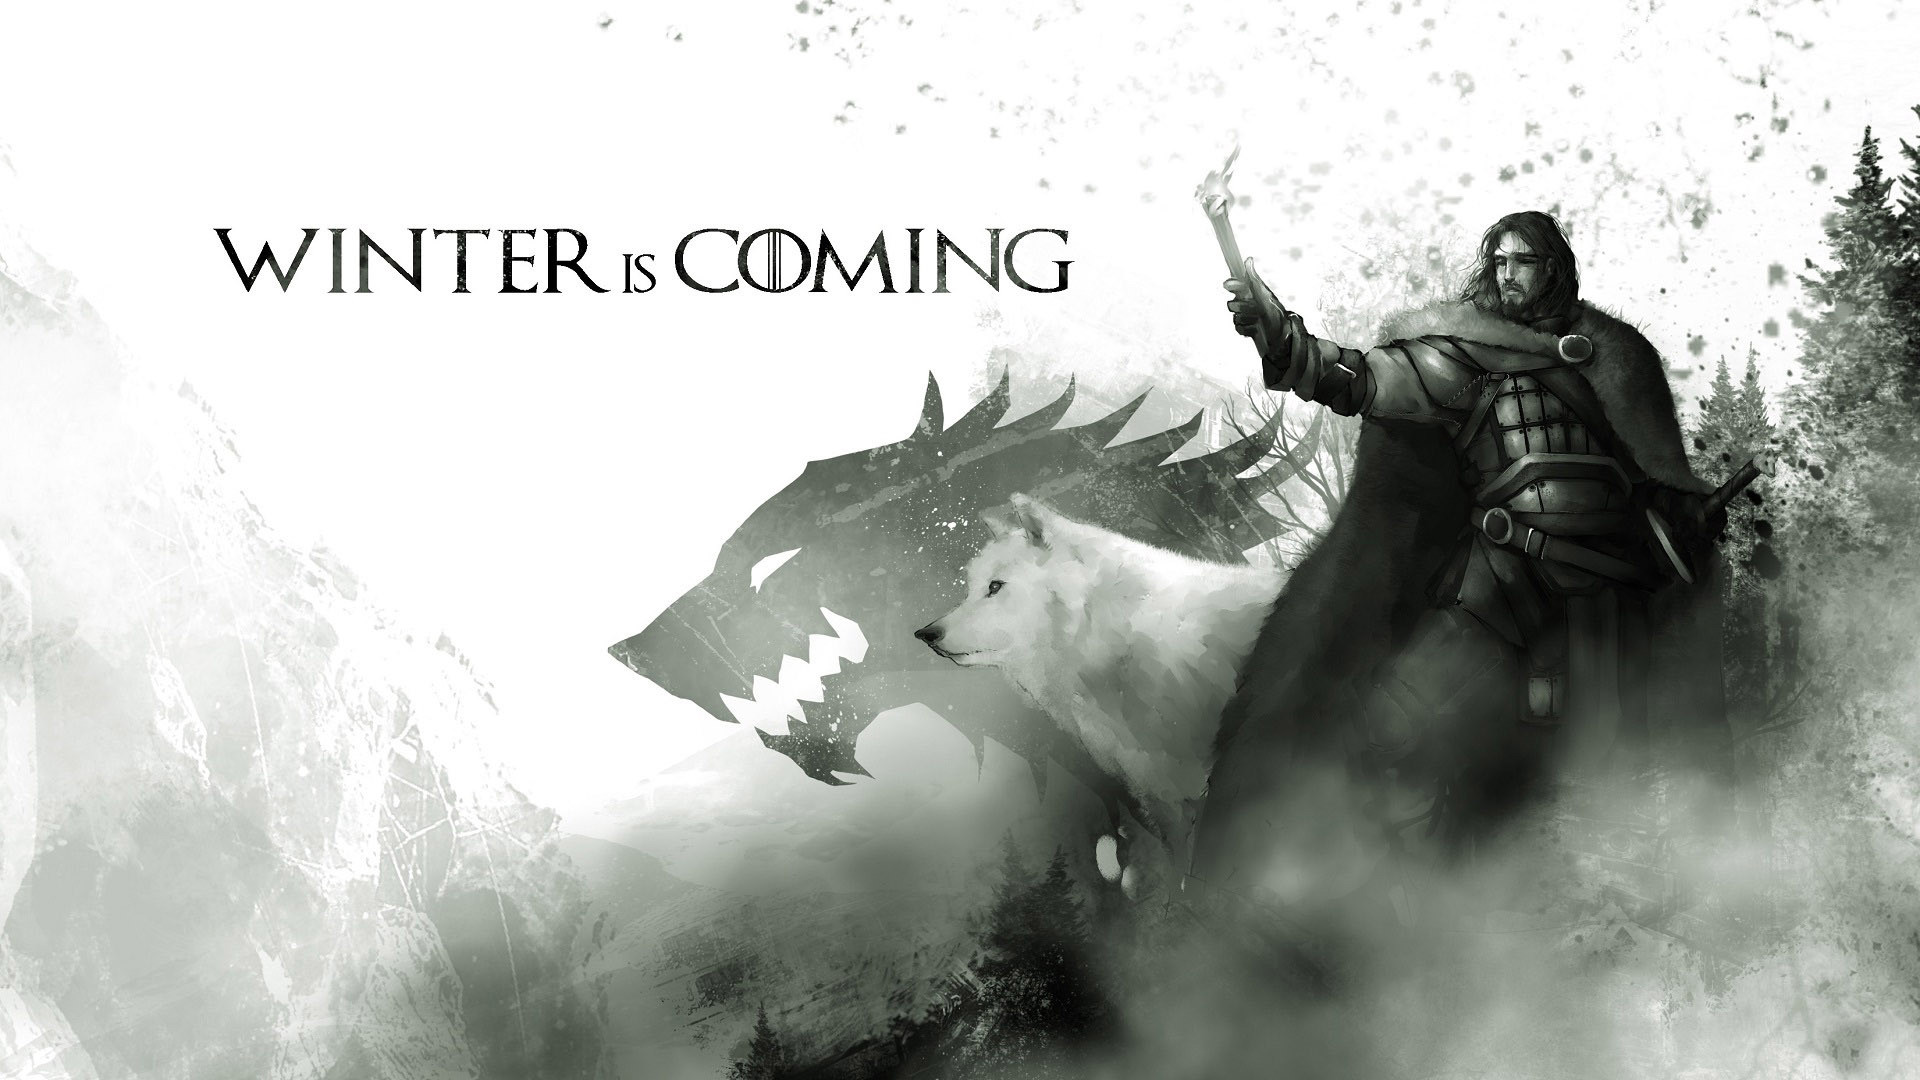 1920x1080 Game of Thrones season 4 wallpaper HD